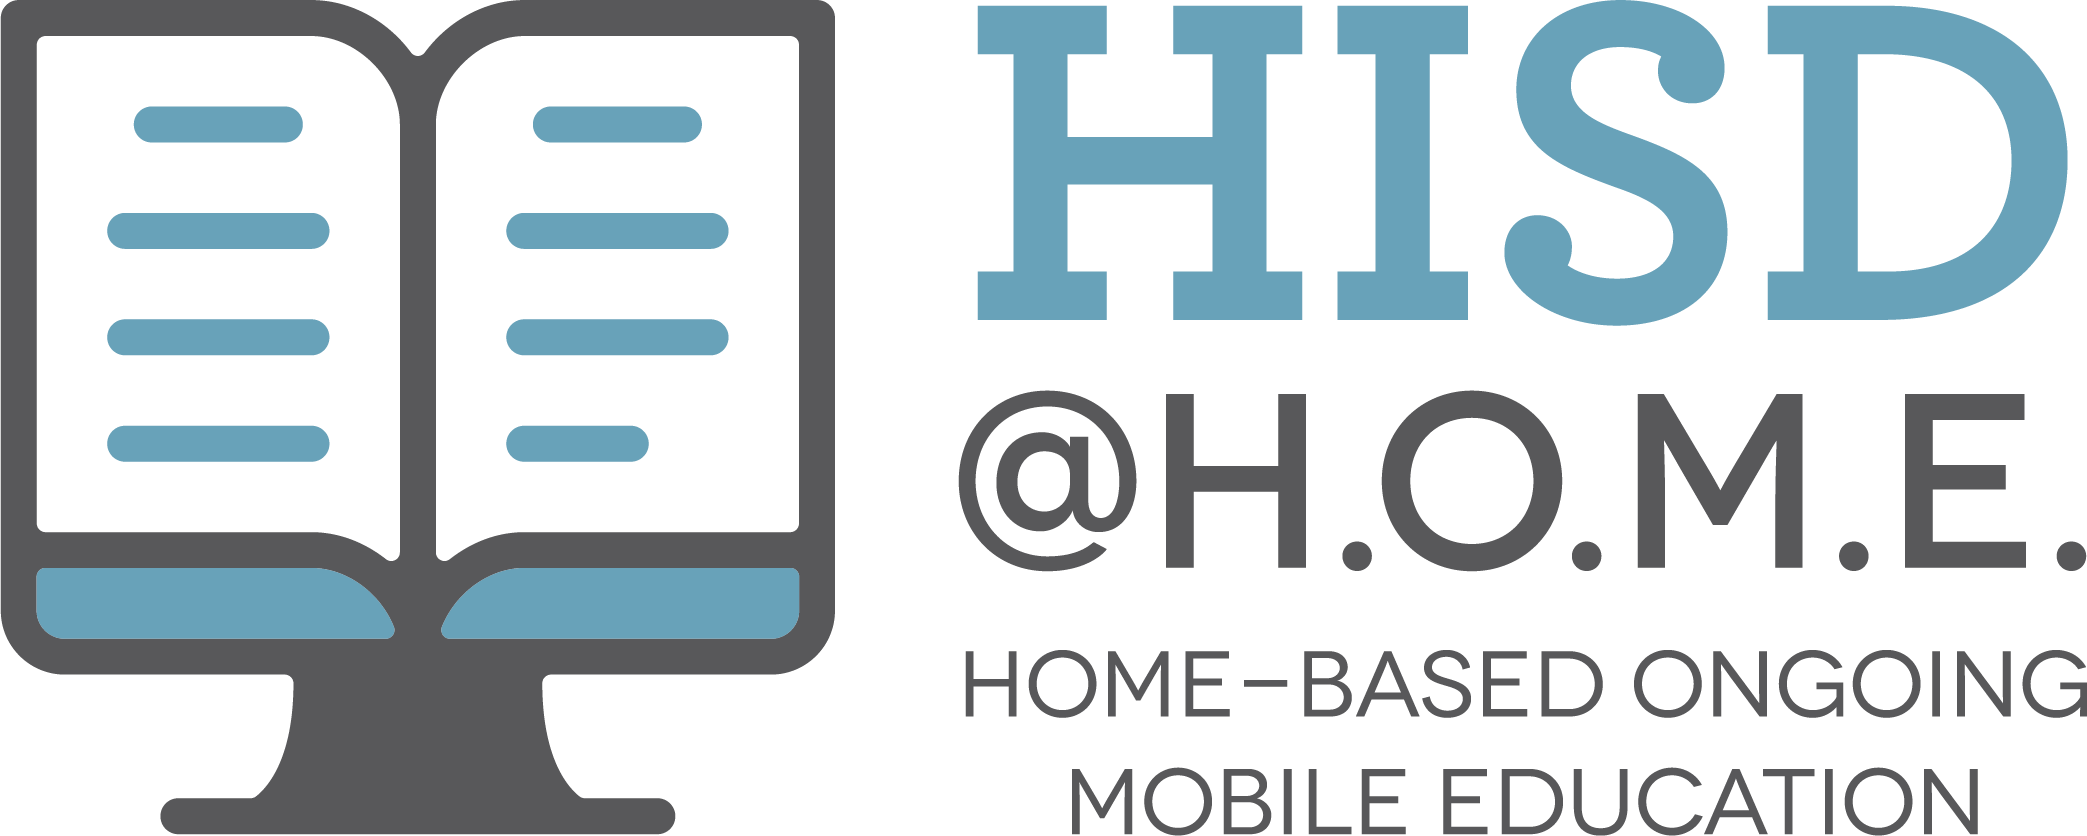 HISD @HOME Home-Based Ongoing Mobile Education